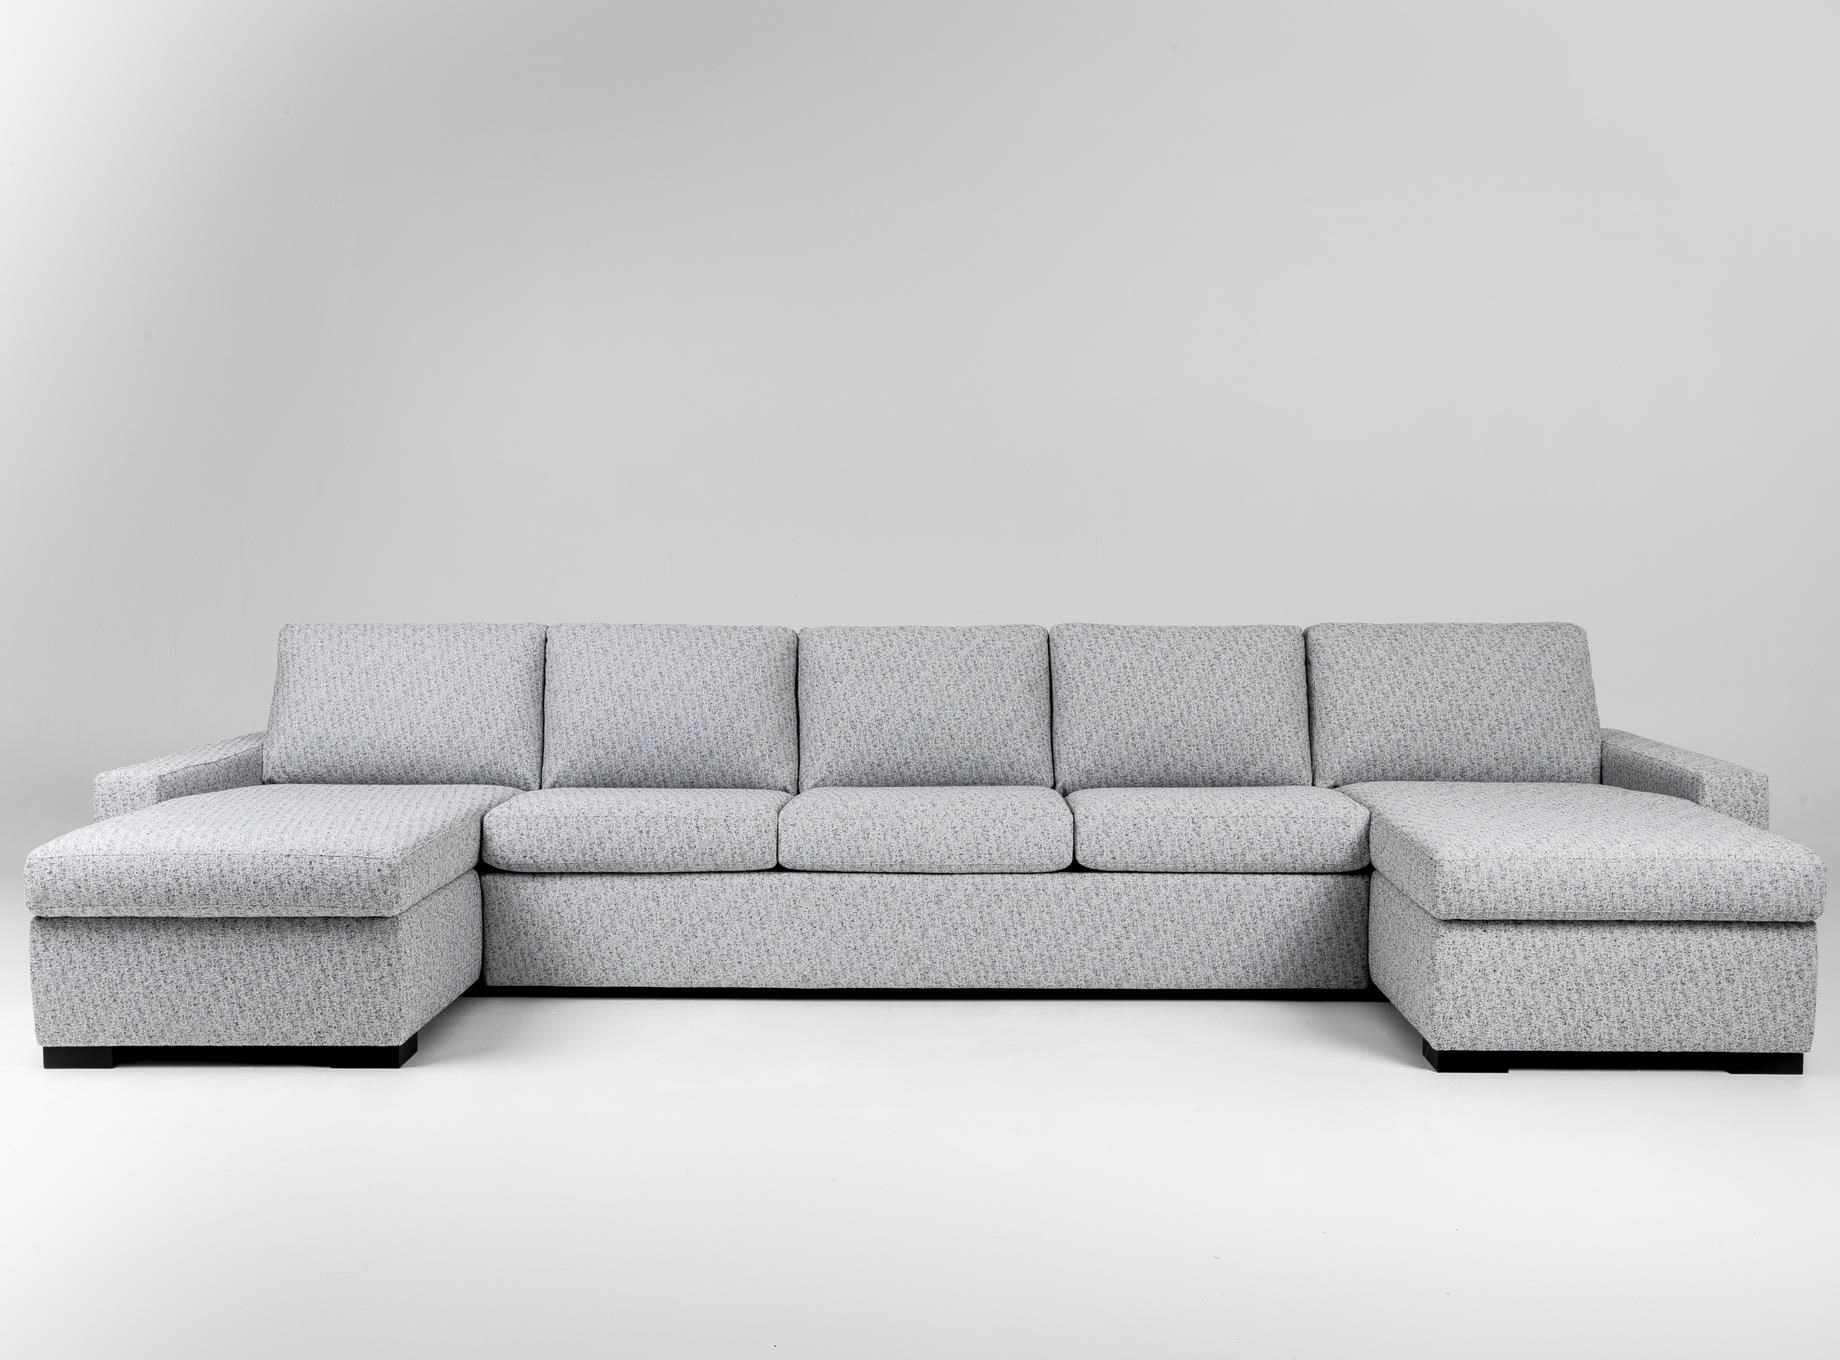 Rogue 5-Seat Sectional Sofa w/ Sleeper by American Leather at Baer's Furniture